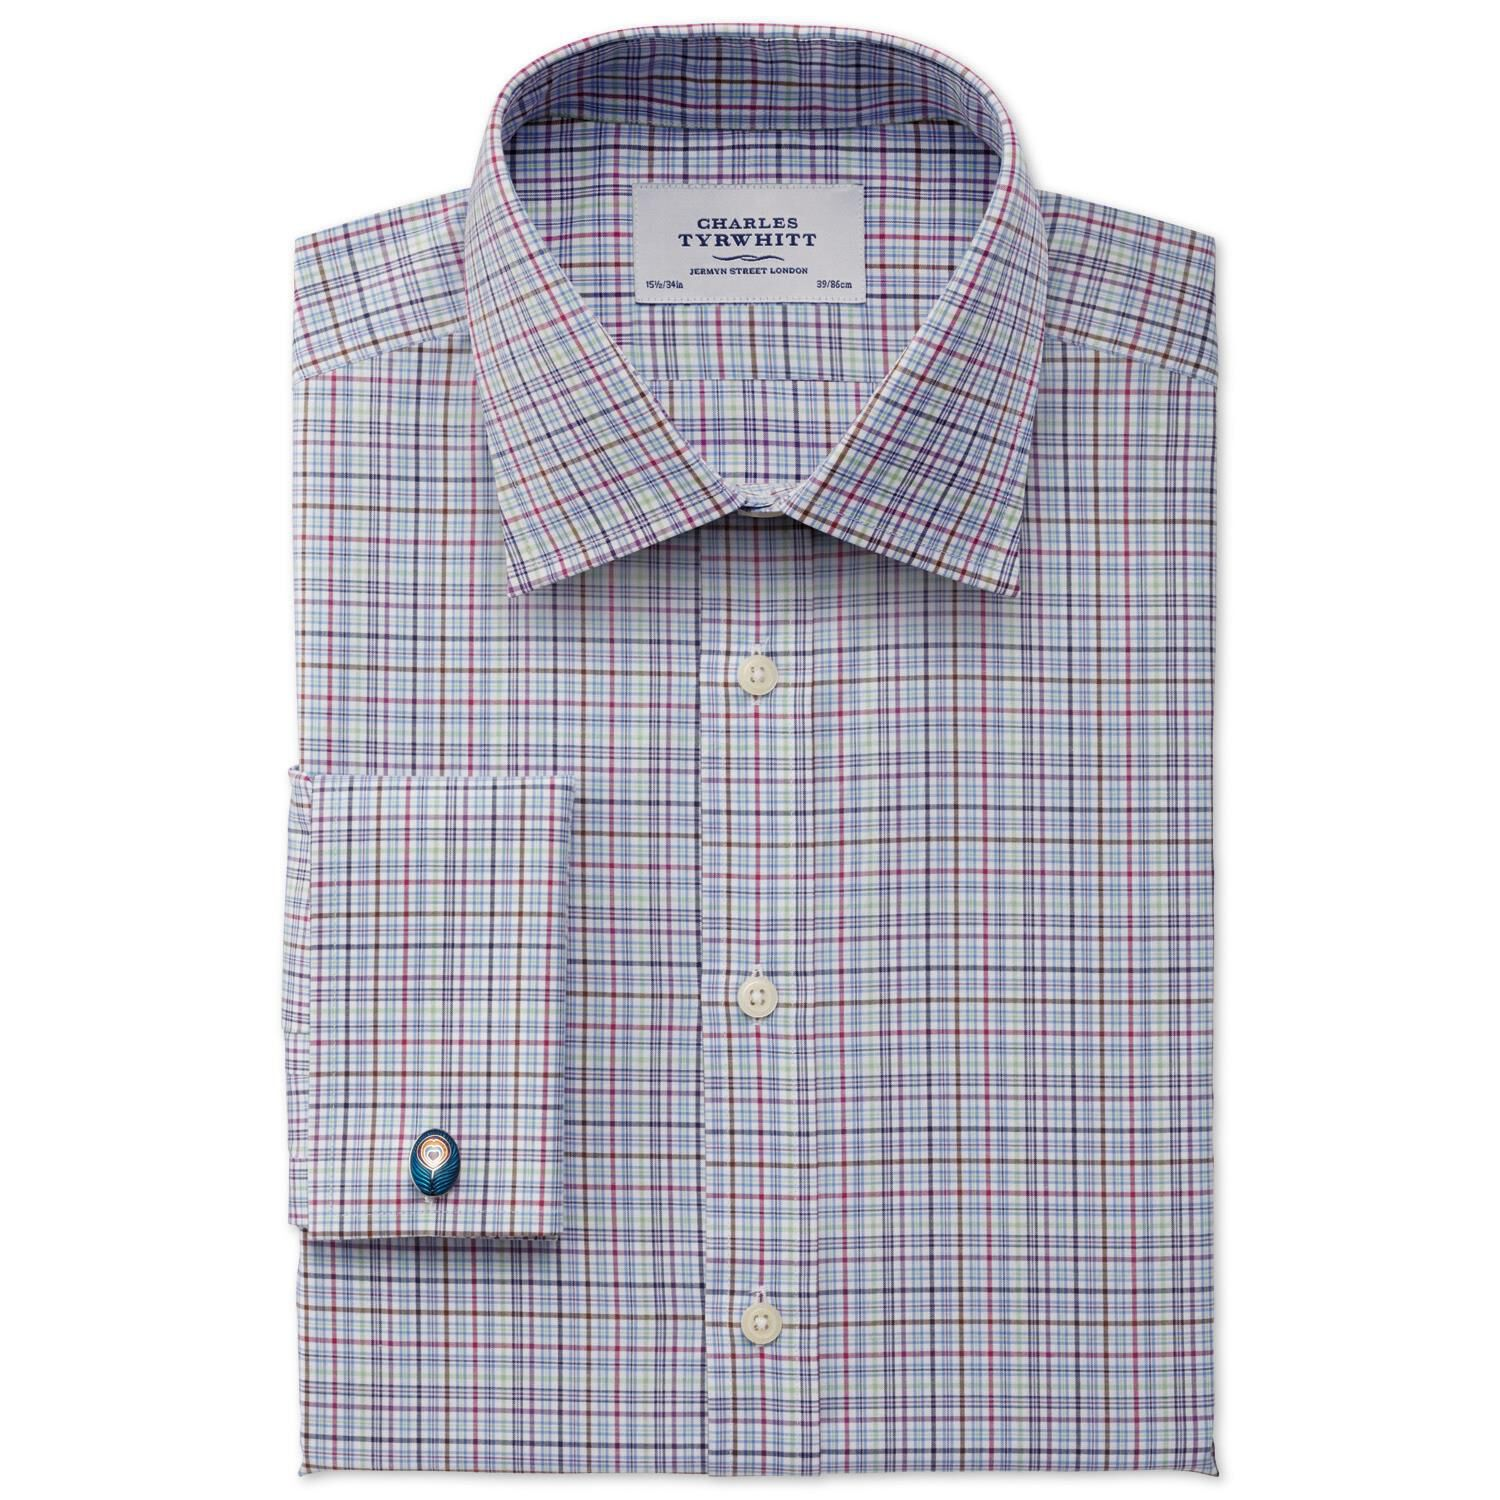 Classic Fit Jermyn Street Check Sky Blue Egyptian Cotton Formal Shirt Double Cuff Size 15.5/37 by Ch